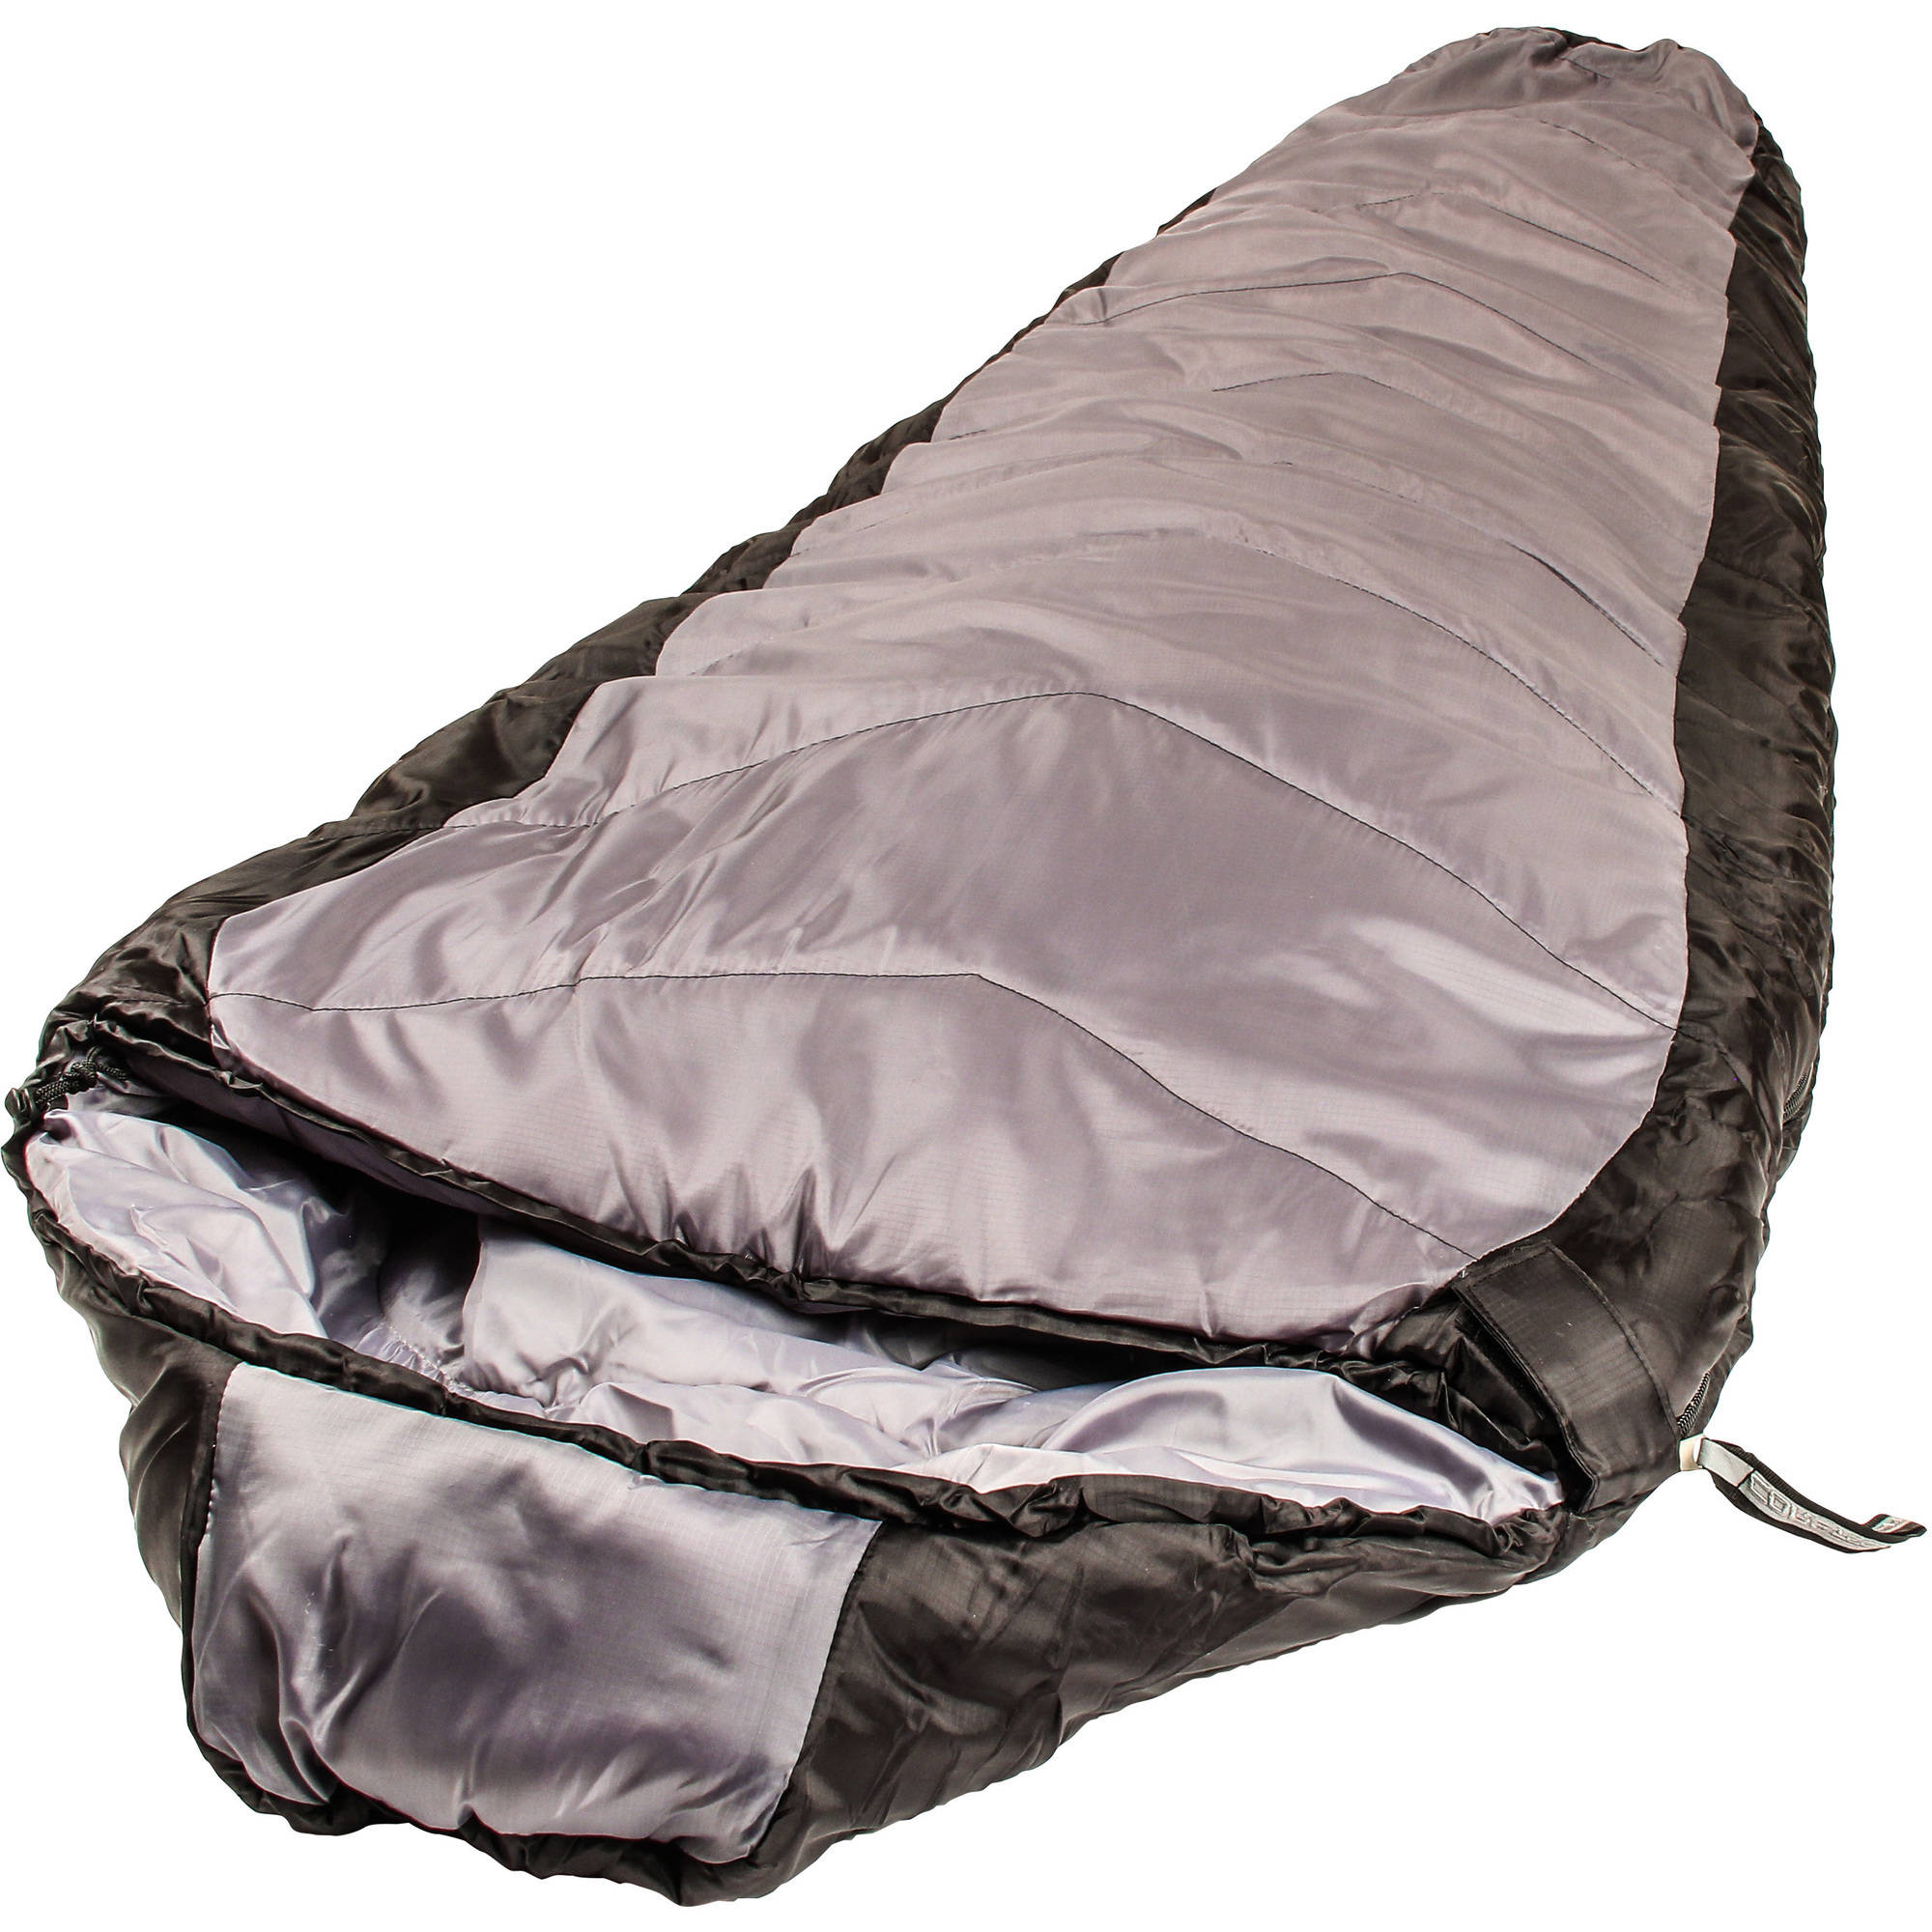 North Star CoreTech 0-Degree Adult Mummy Sleeping Bag, Black/Gray